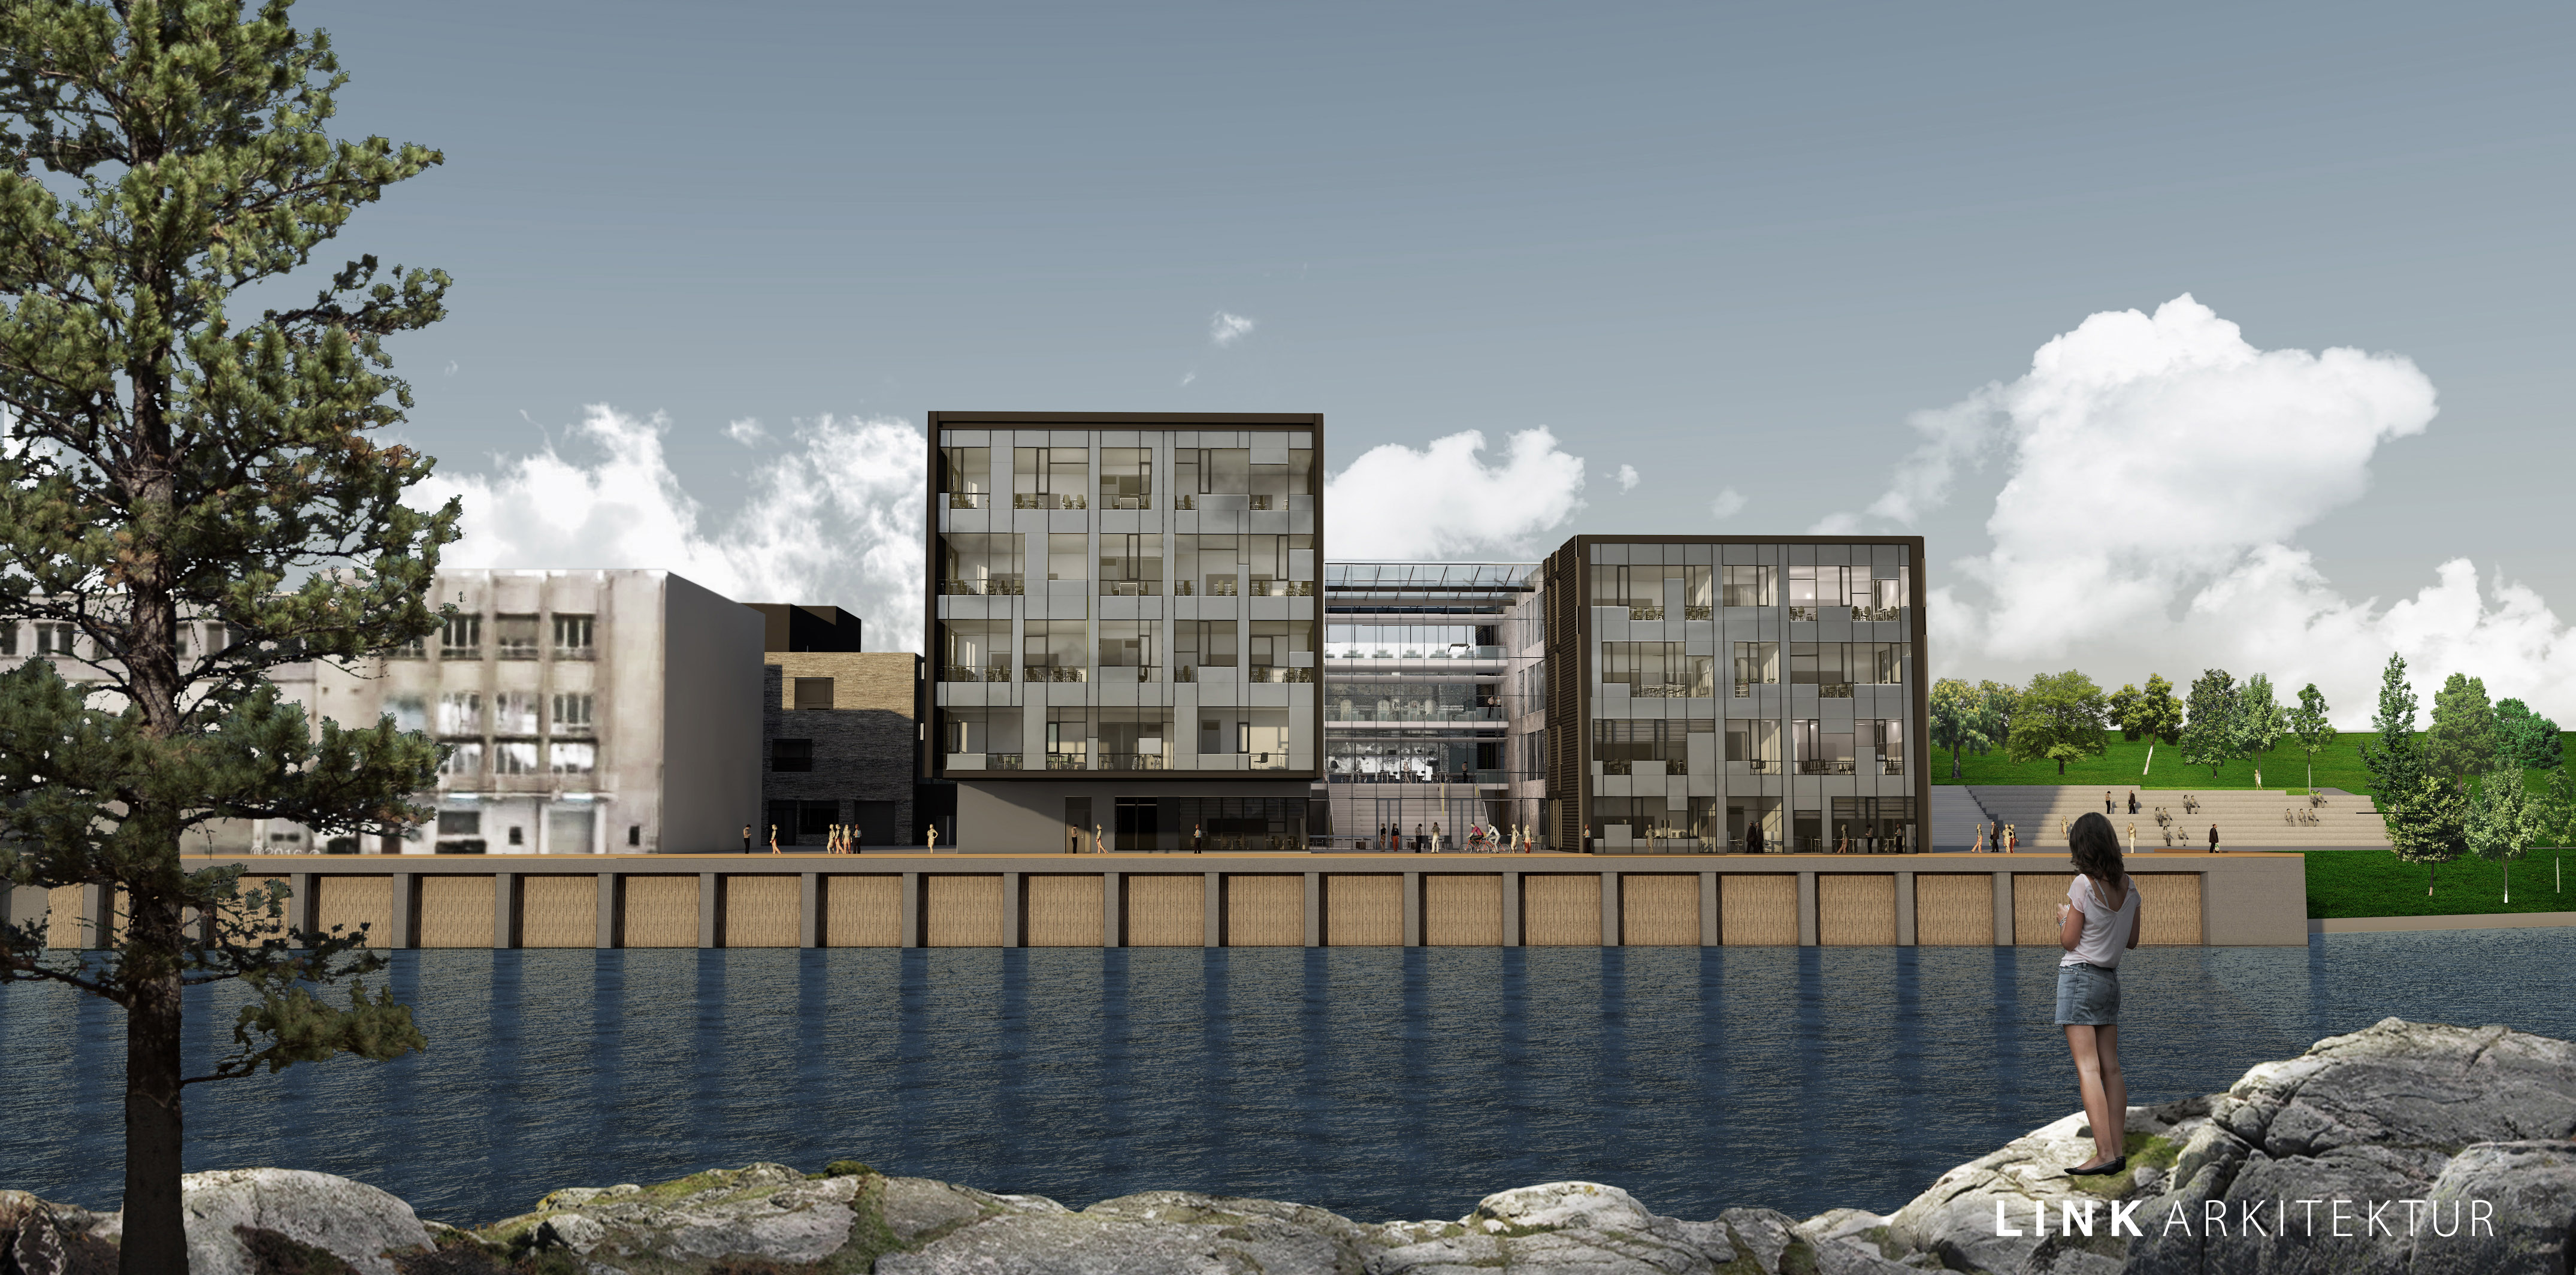 Skanska signs with Telemark county council to build new high school in Skien, Norway